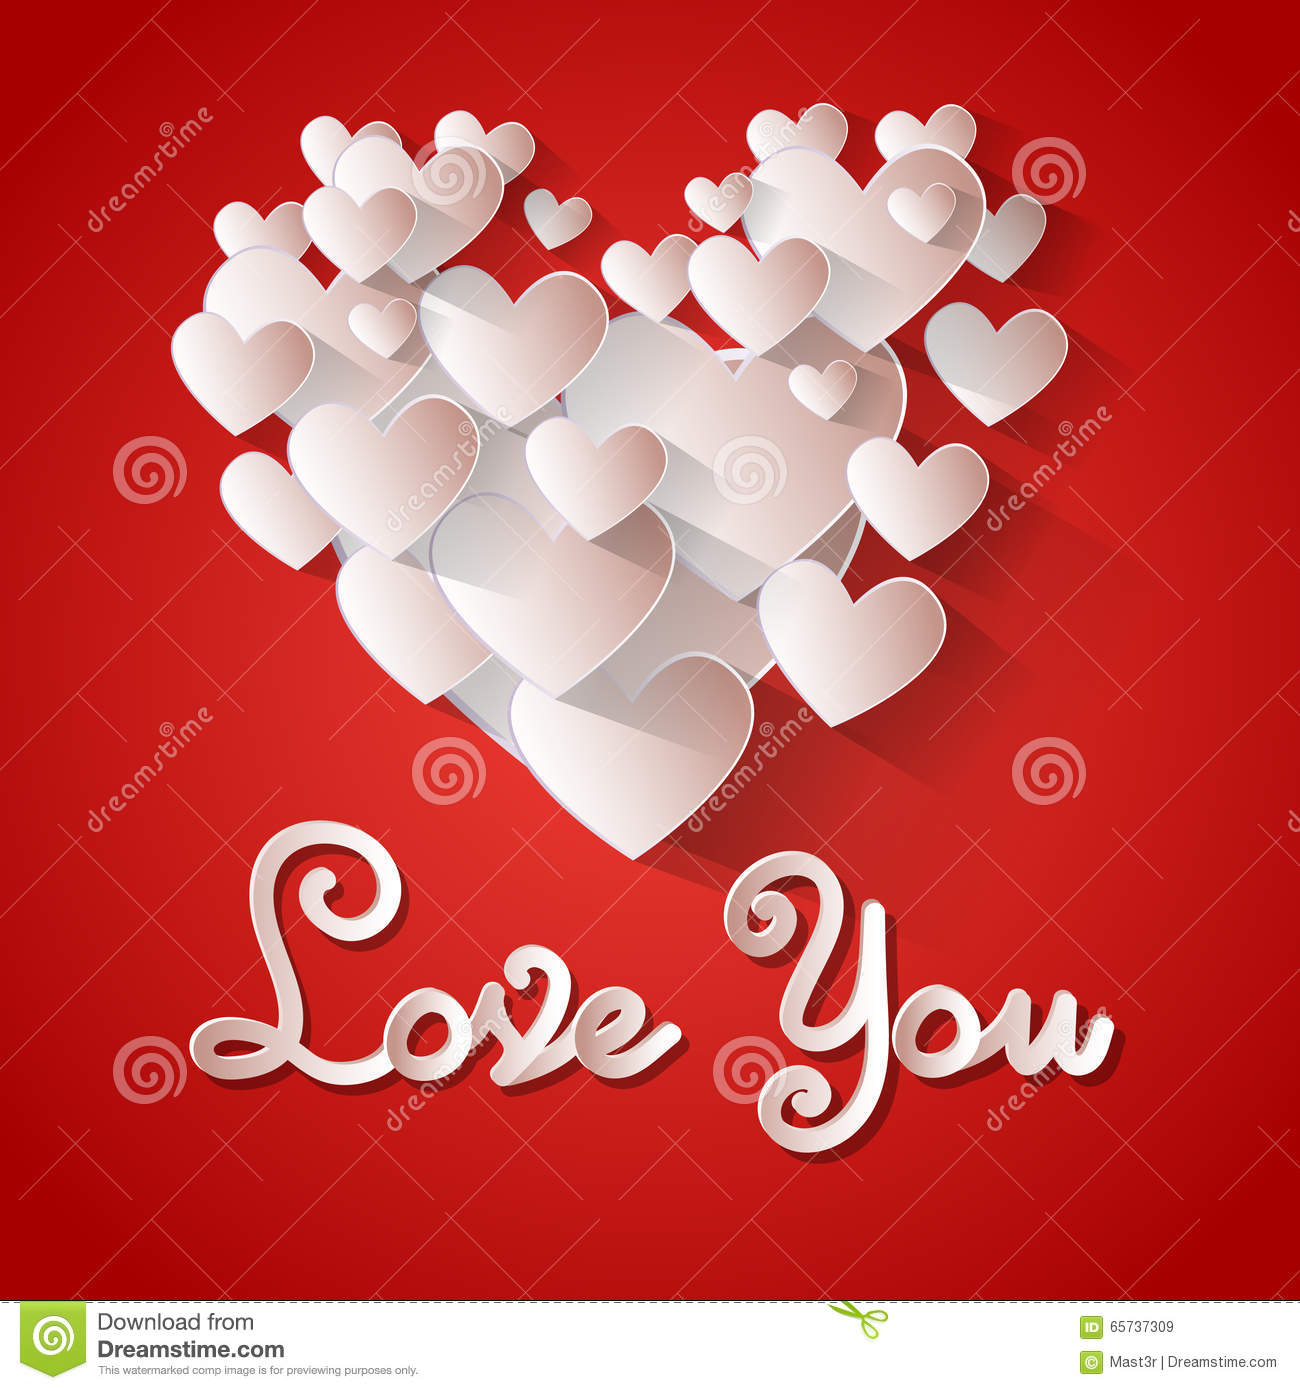 love you heart shape valentine day greeting card stock vector